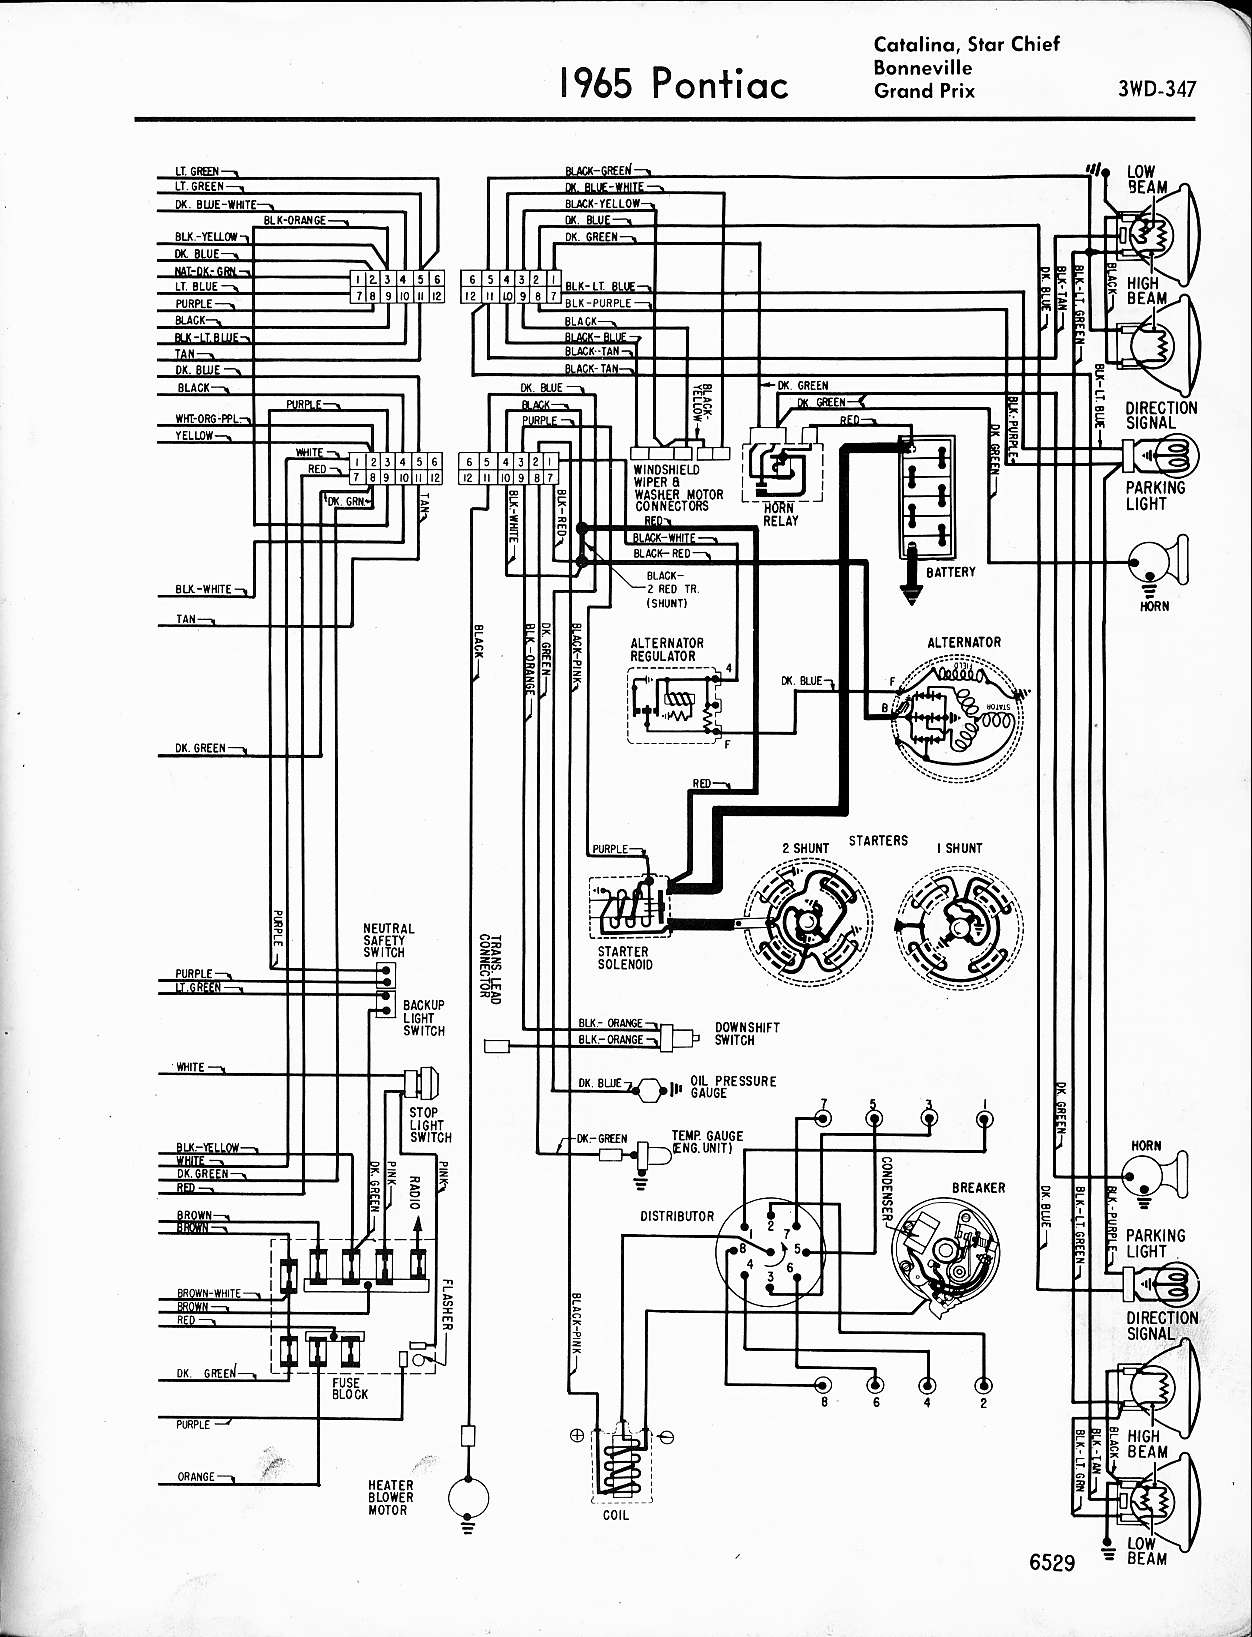 1962 Pontiac Wiring Diagram Detailed Schematics 62 Ford Generator 68 Gto Ignition Studebaker Diagrams